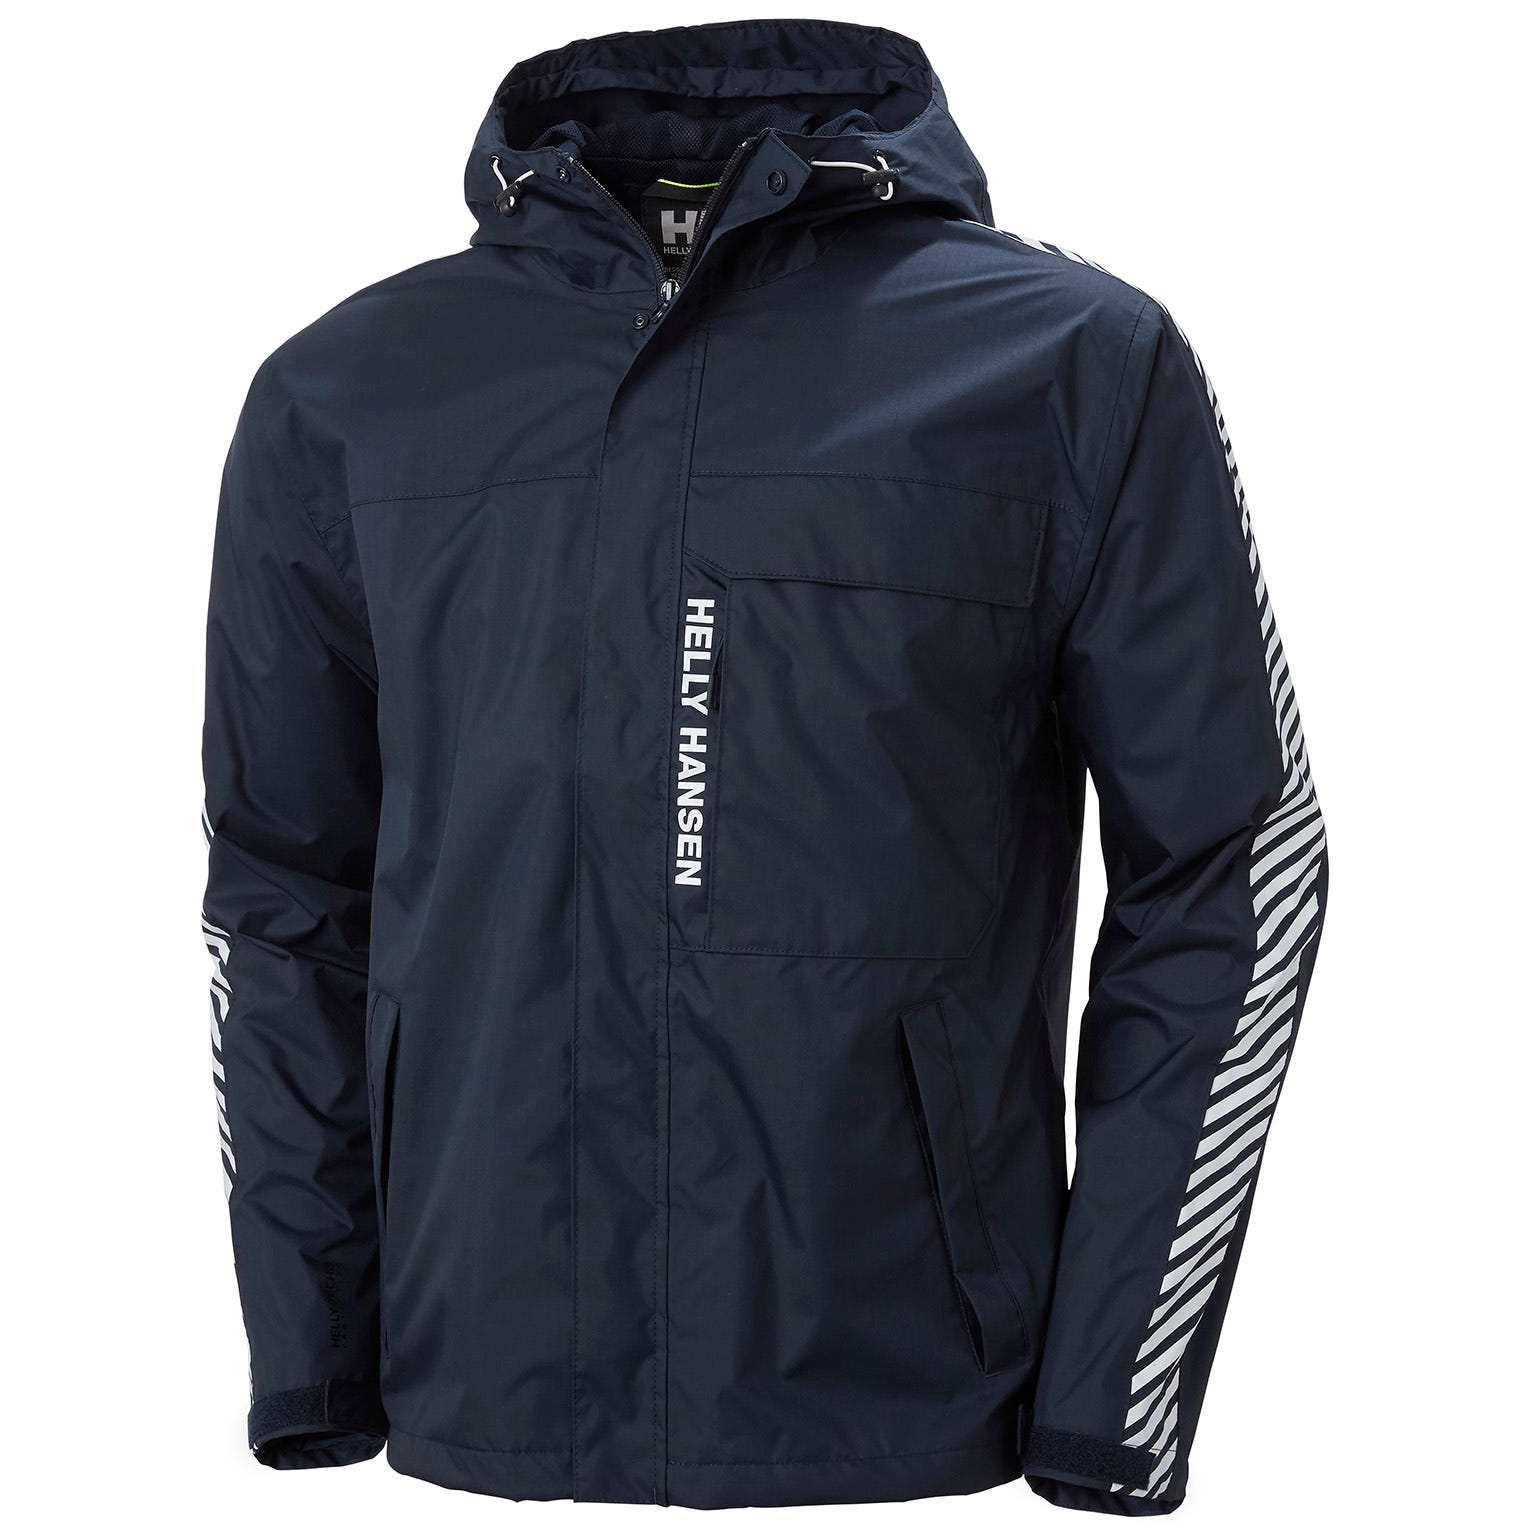 Mens Vector Packable Summer Rain Jacket | Helly Hansen Mens Navy S